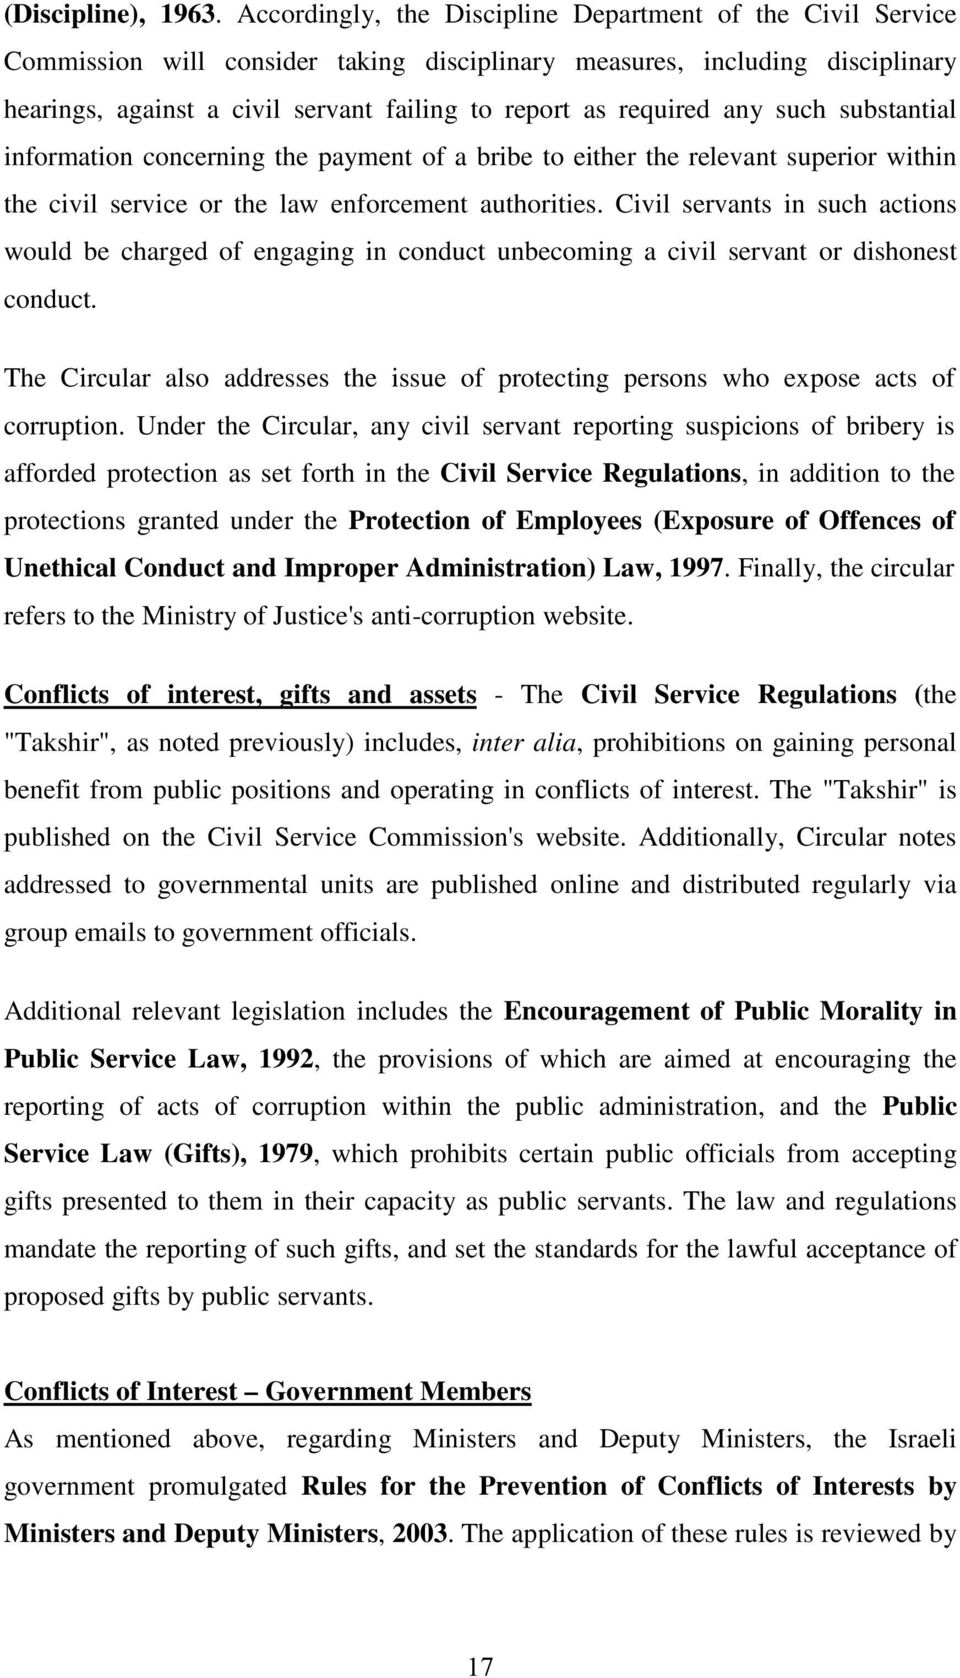 required any such substantial information concerning the payment of a bribe to either the relevant superior within the civil service or the law enforcement authorities.